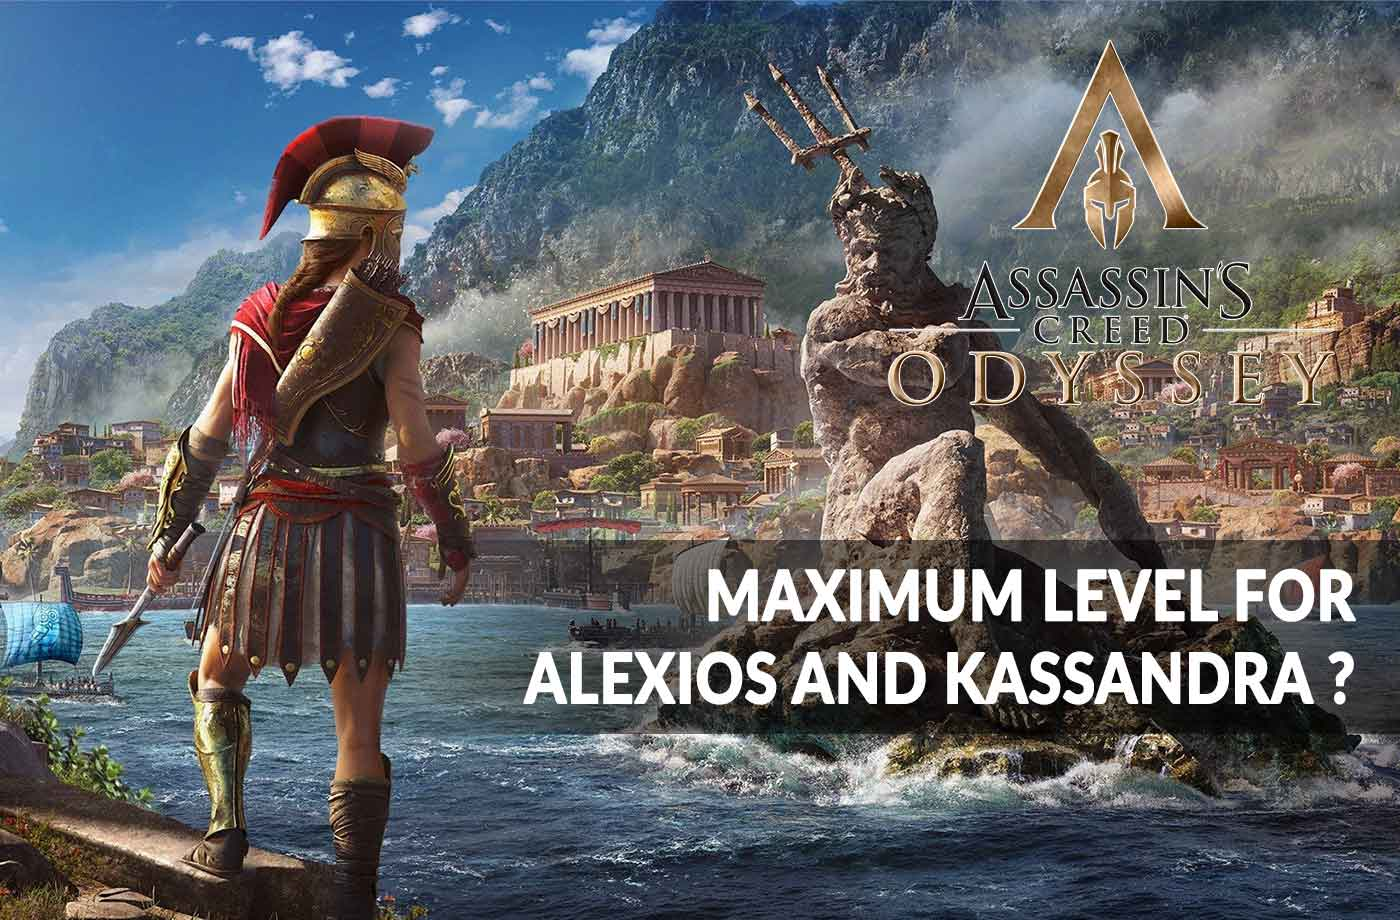 Wiki Assassin S Creed Odyssey What Is The Maximum Level Cap For